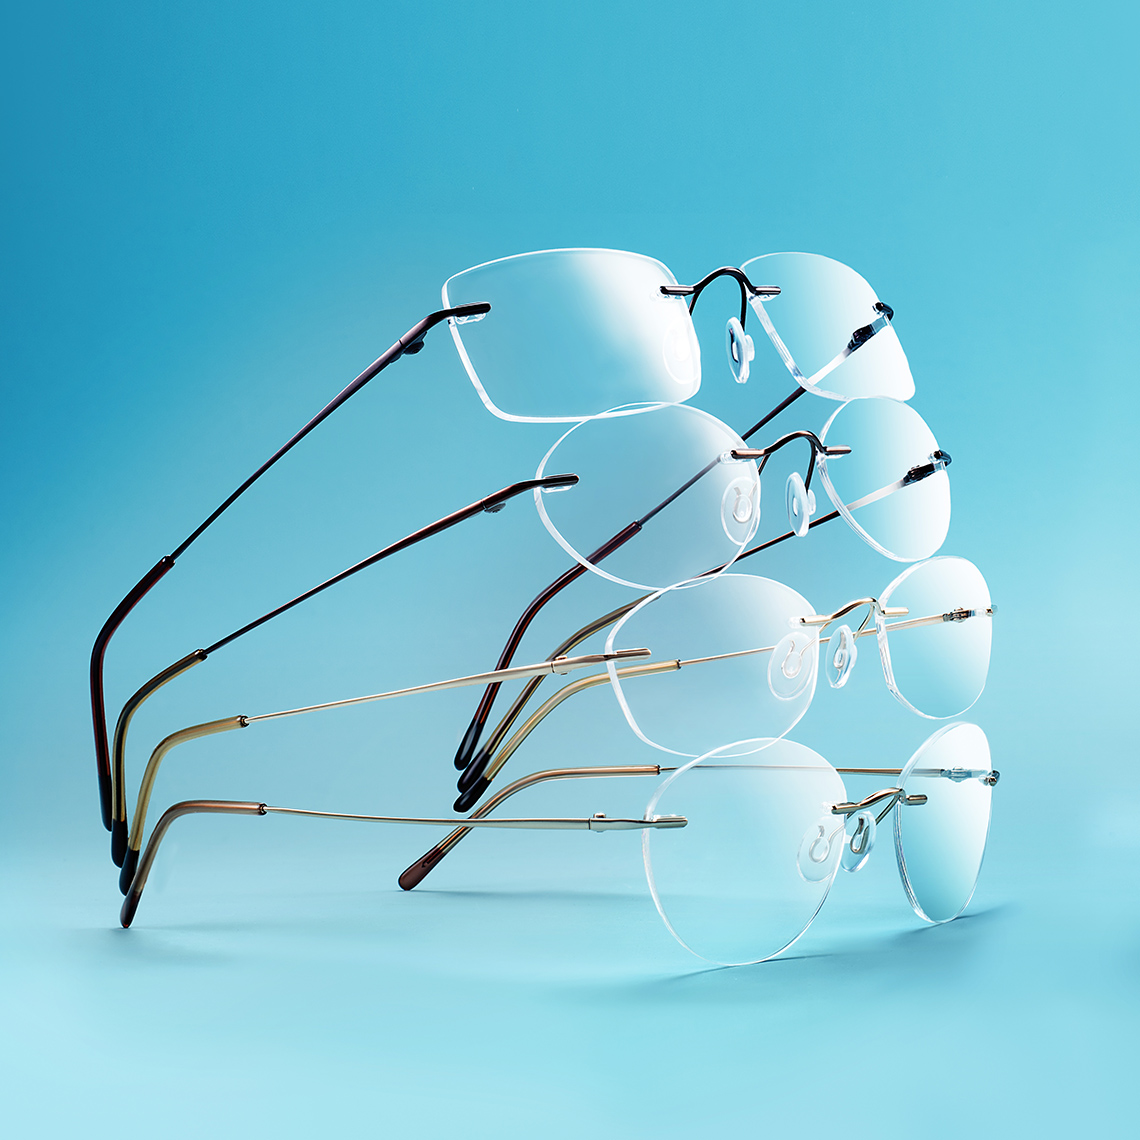 Eyewear-Fashion-still-life-Product-Photography